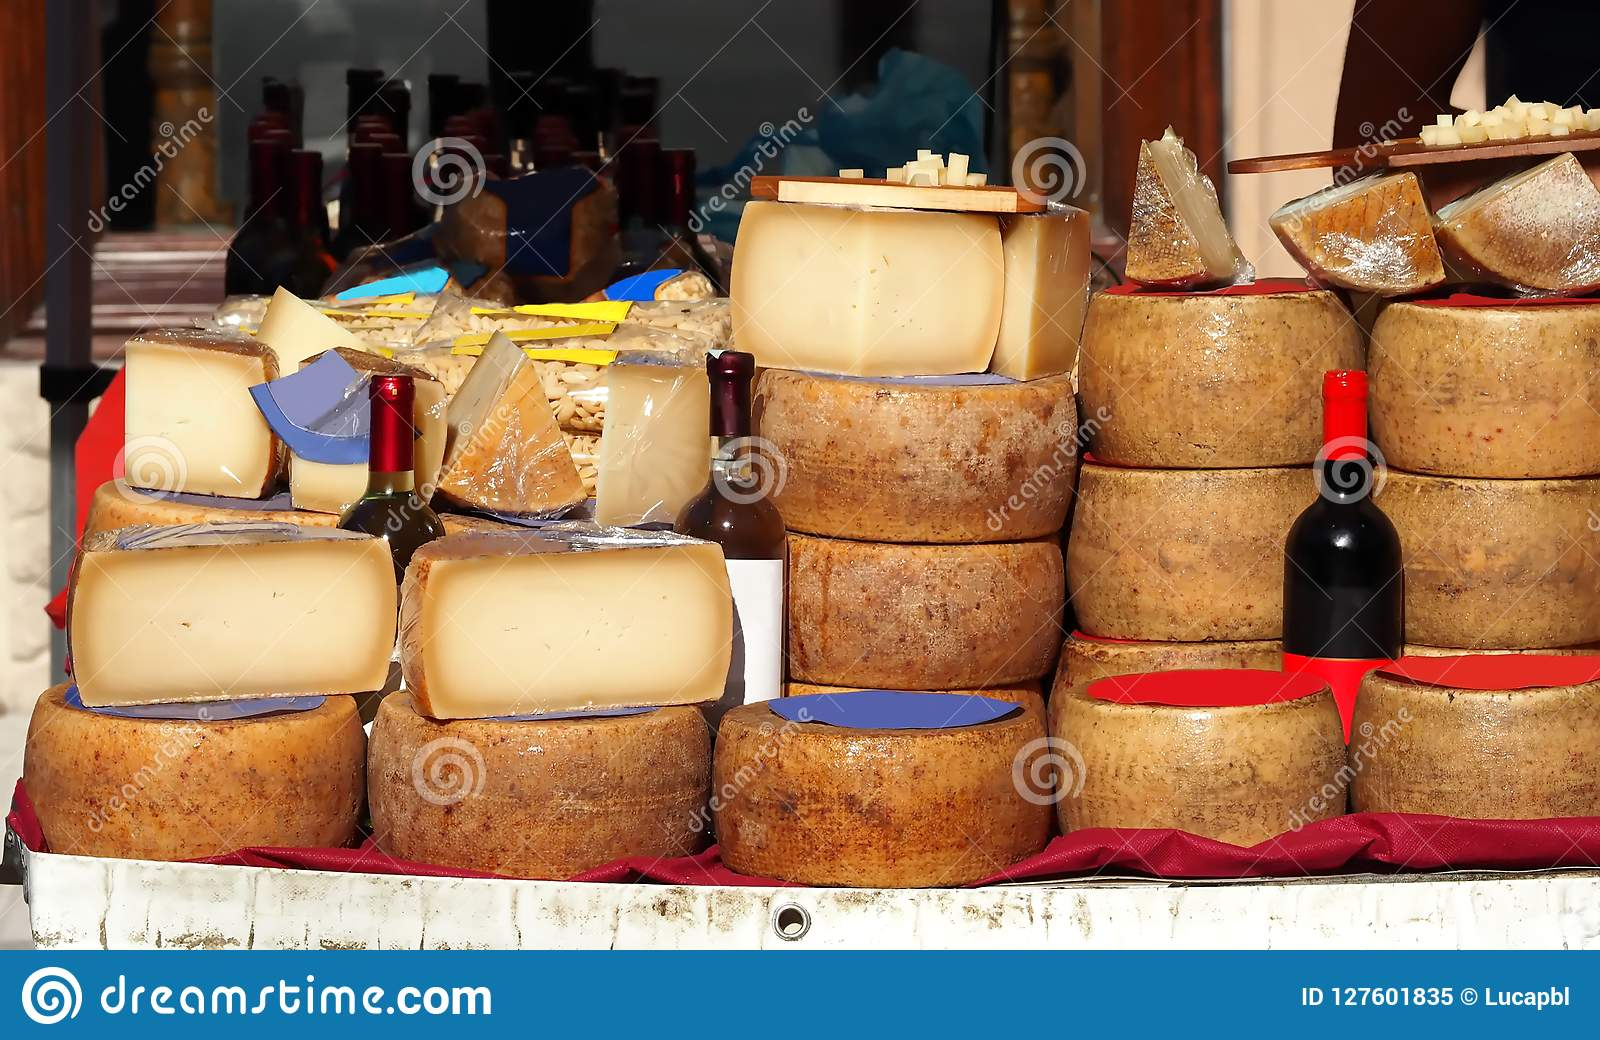 Slices and wheels of Pecorino cheese together with bottles of Cannonau, white wine, pasta and other Sardinian typical dishes